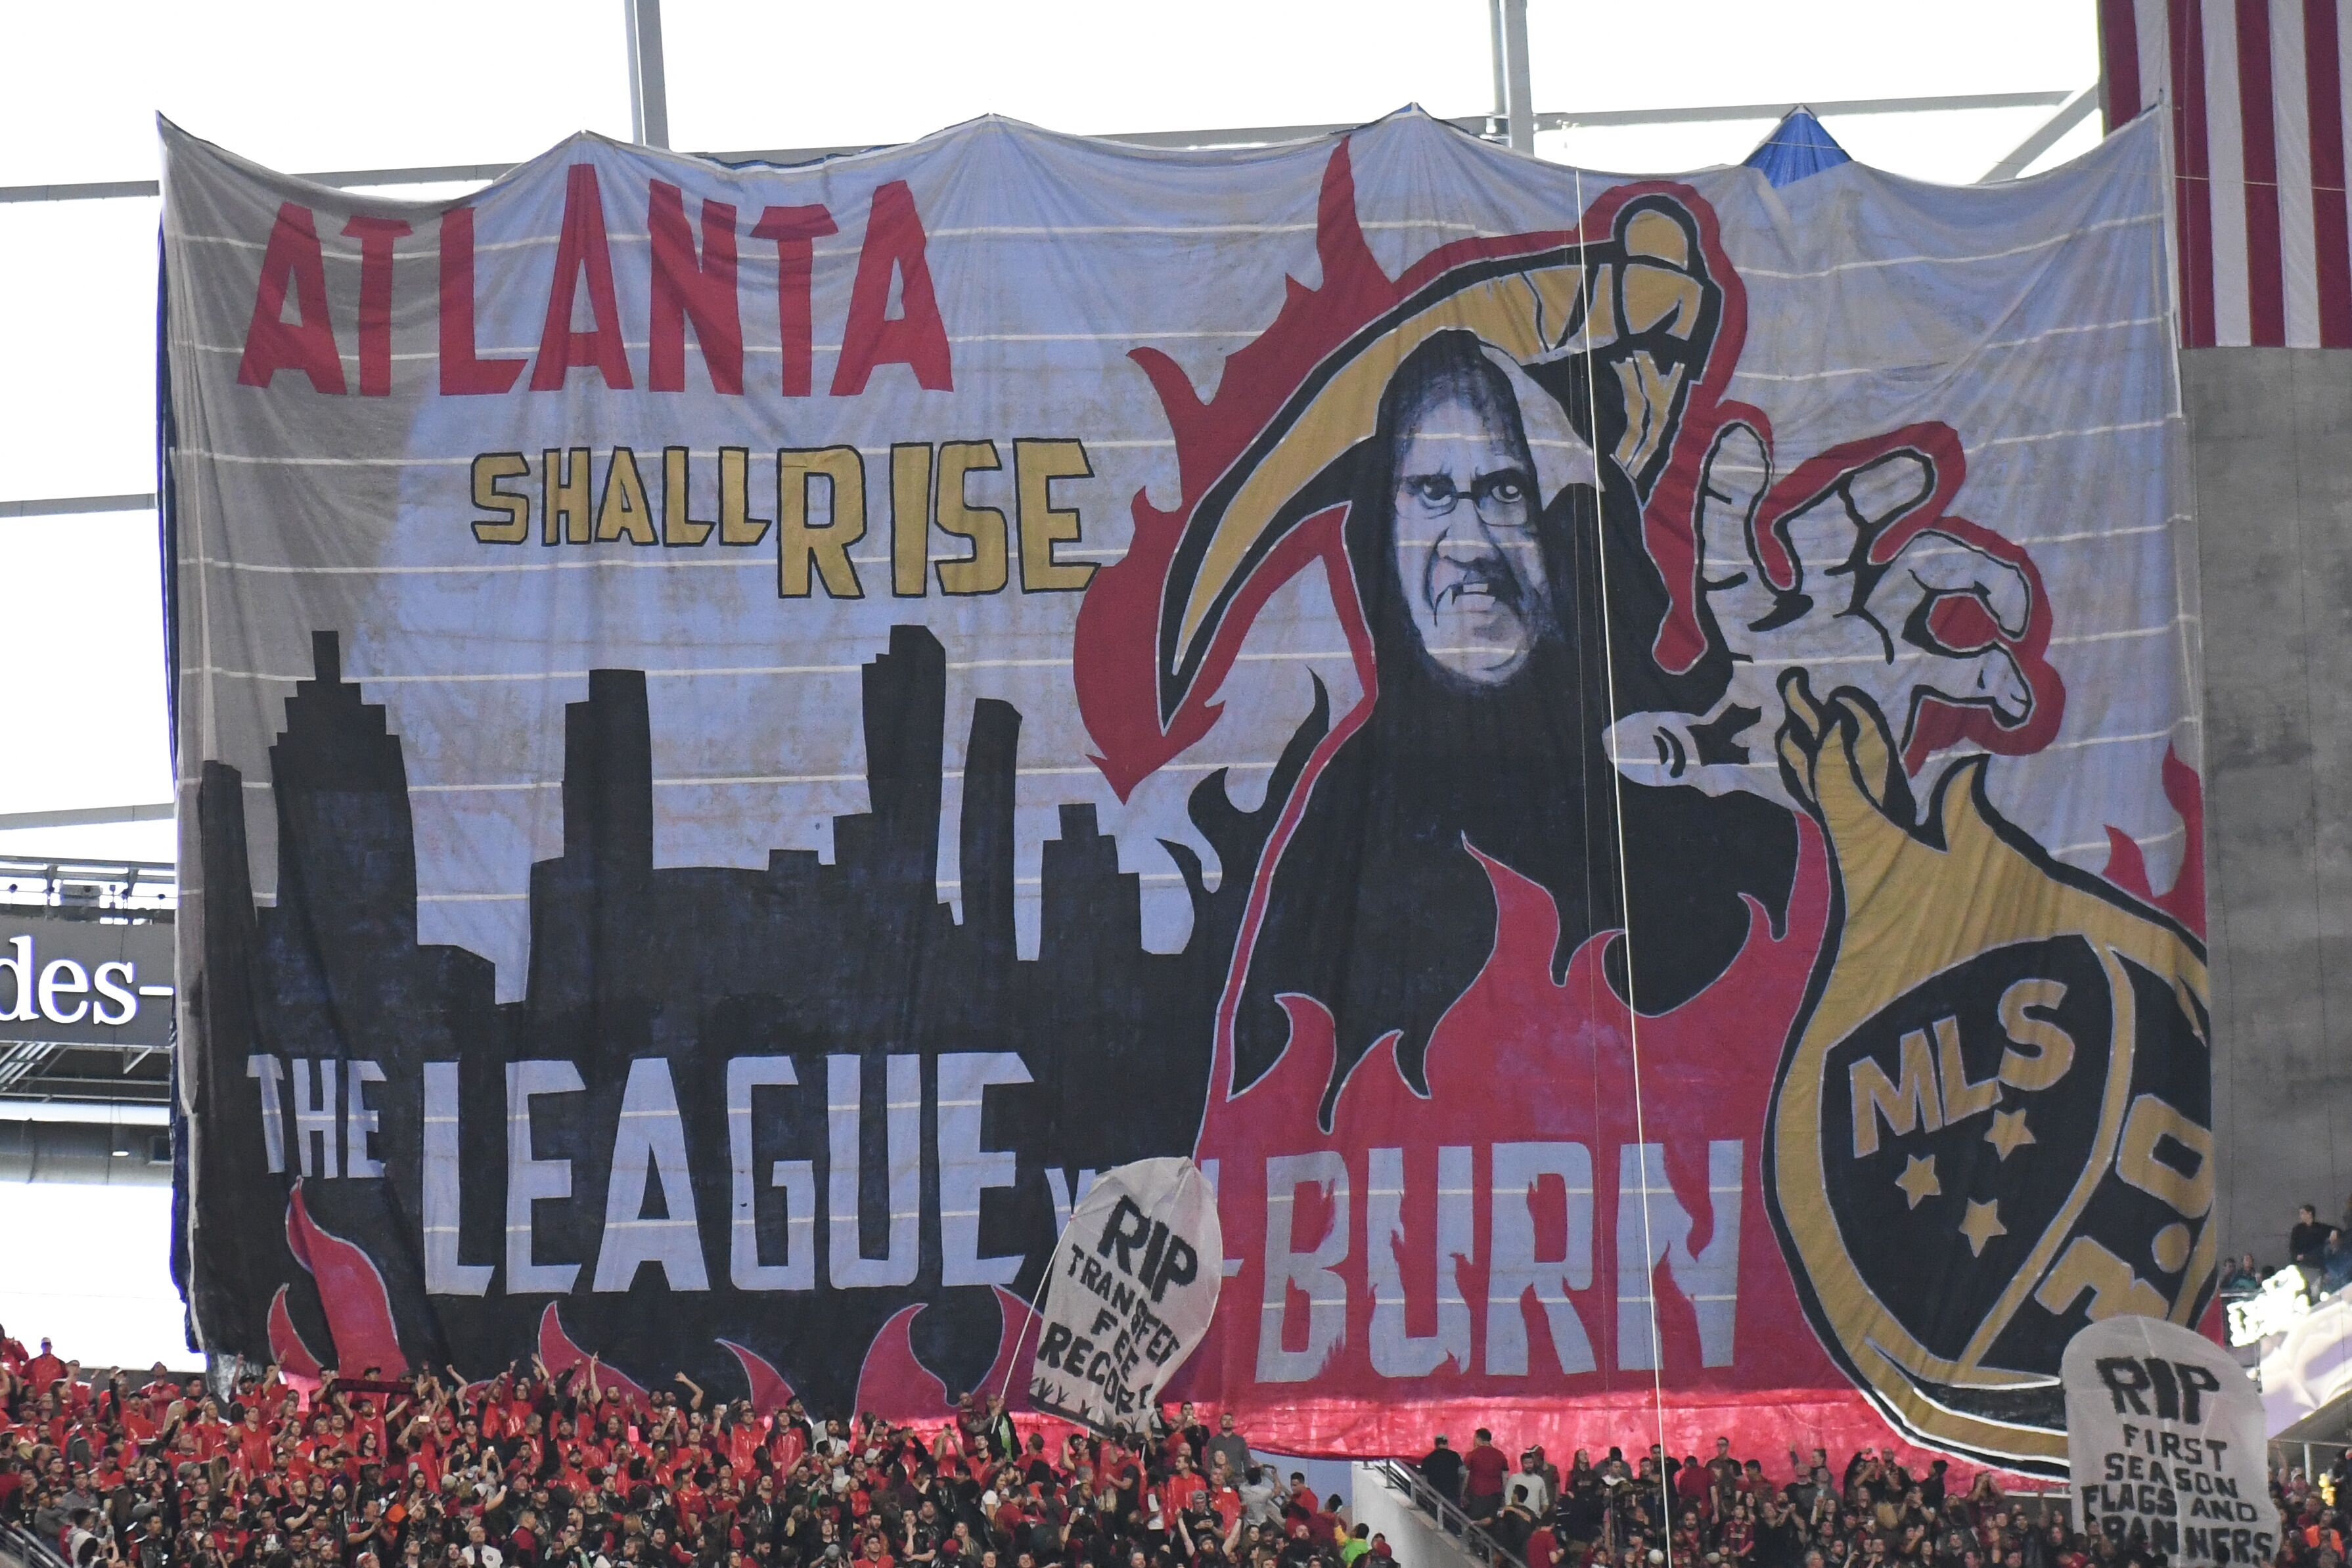 930690756-soccer-mar-11-mls-dc-united-at-atlanta-united-fc.jpg